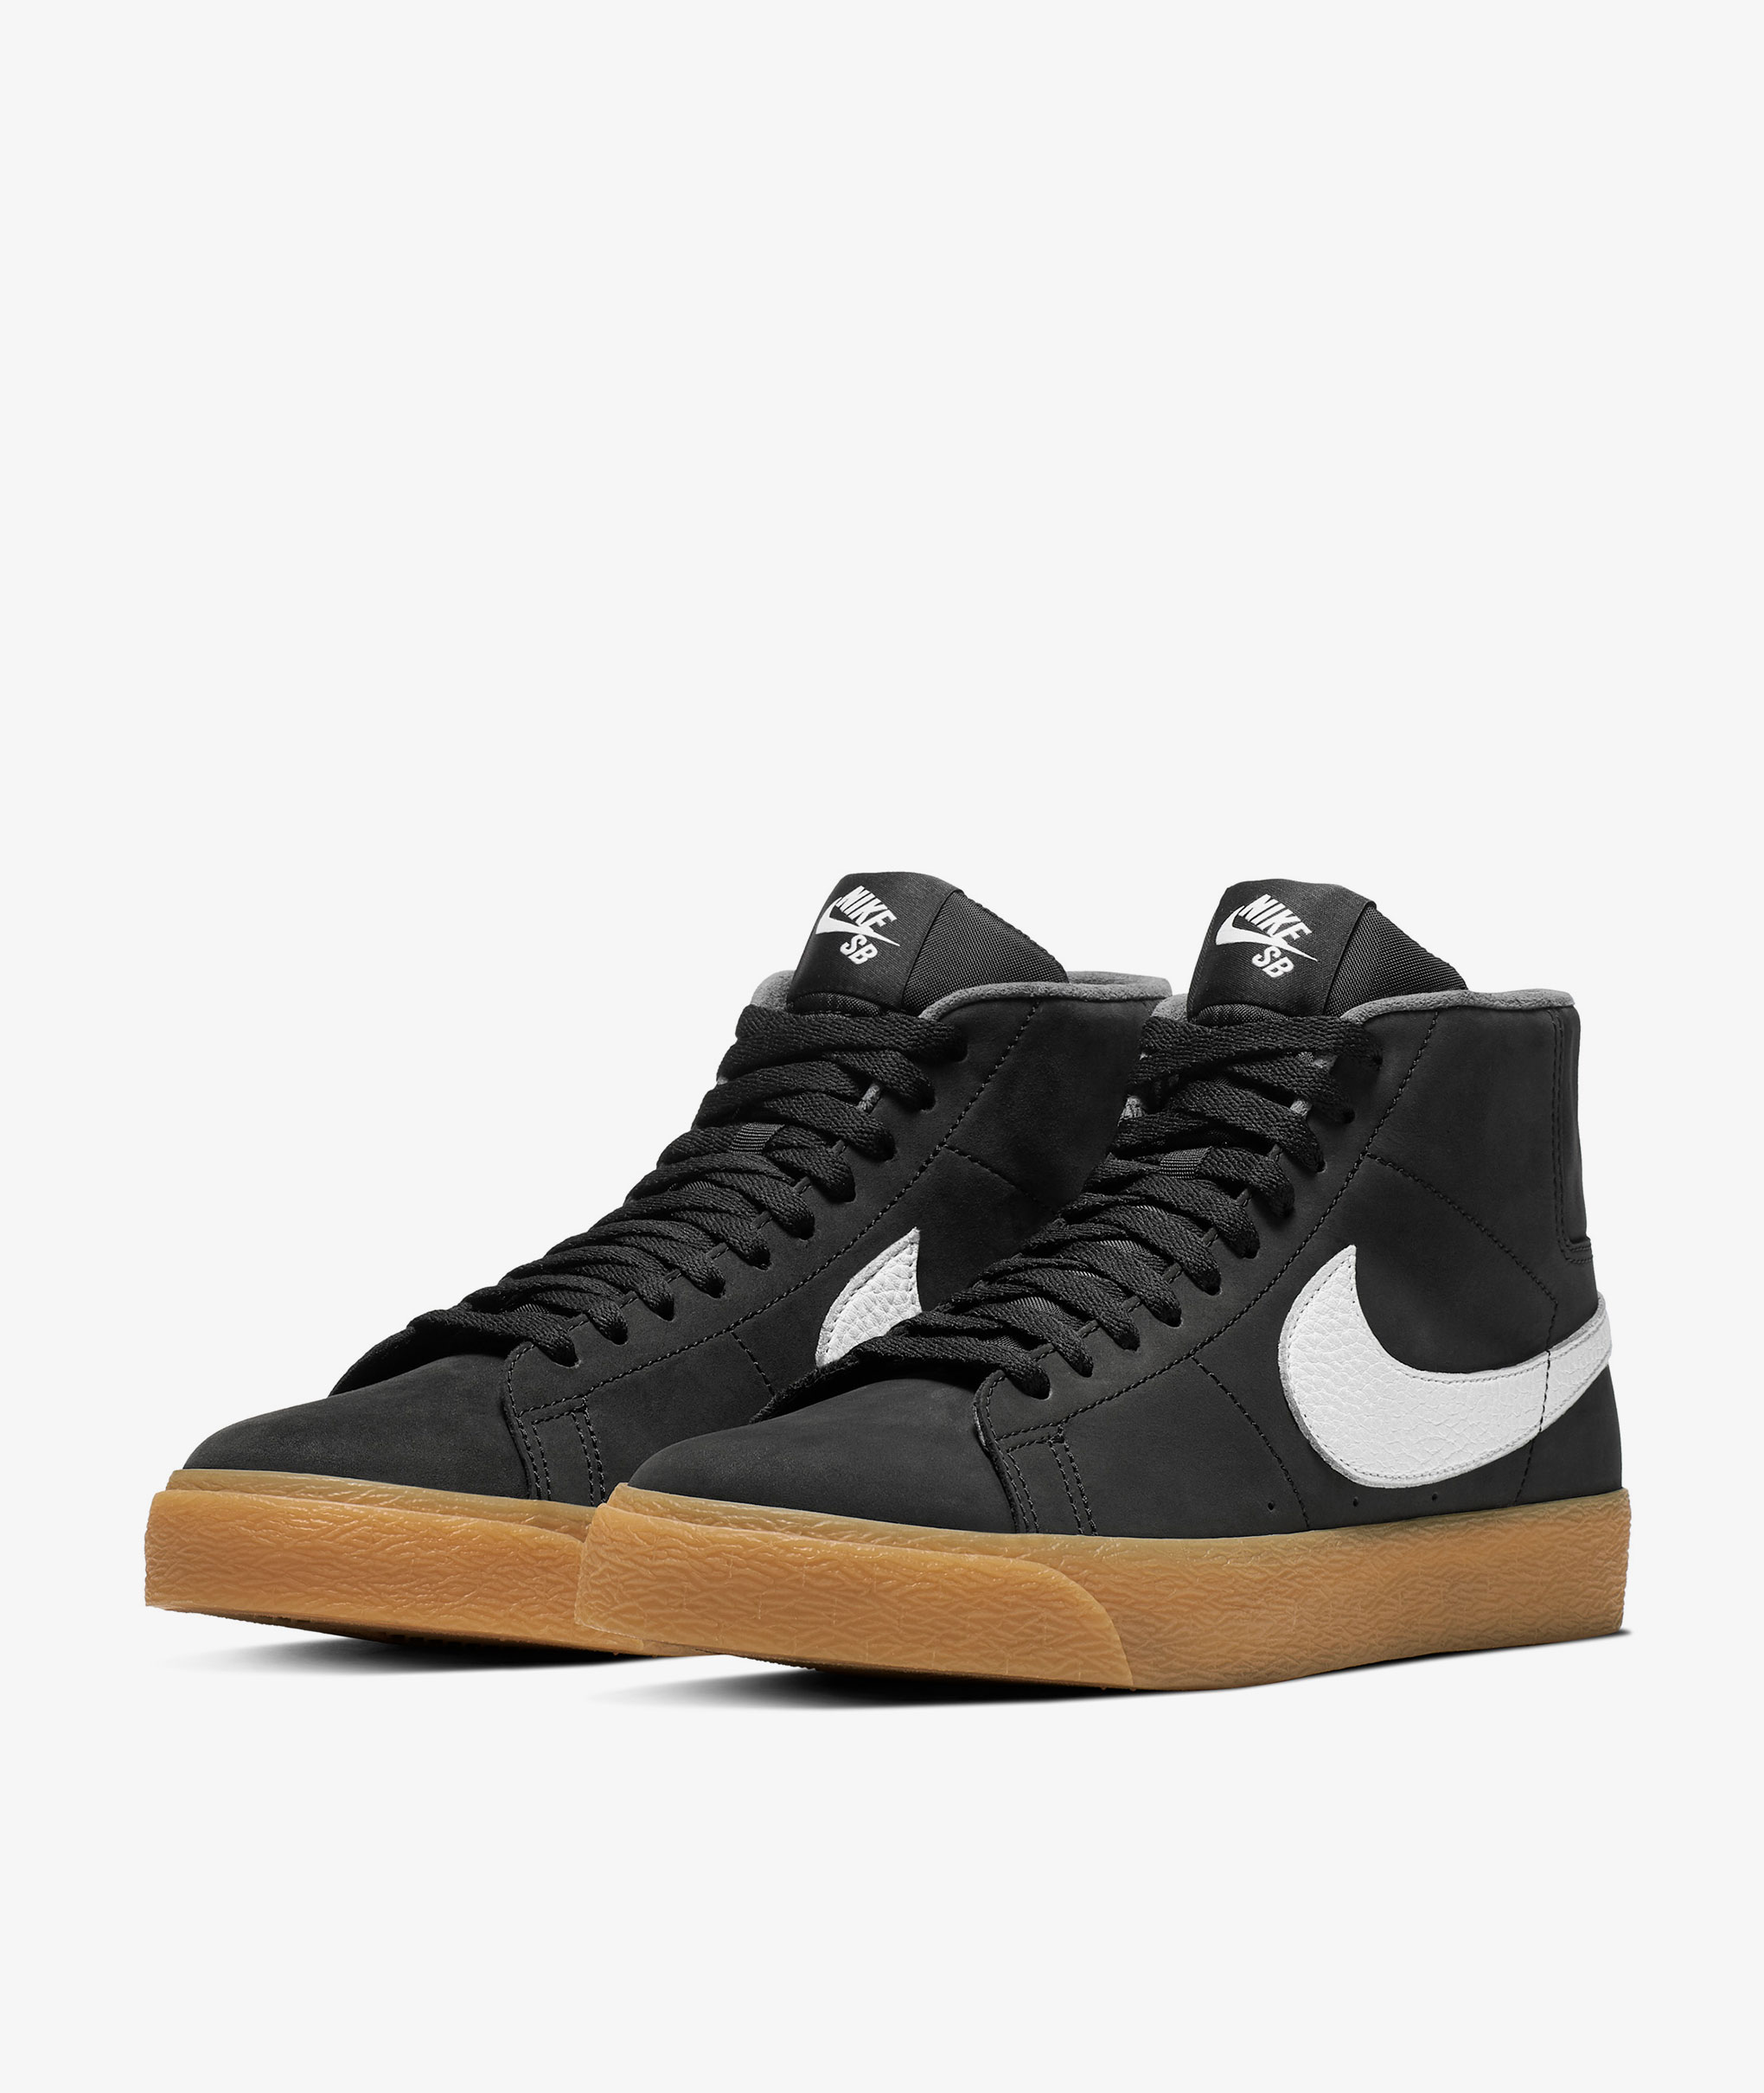 promo code aa4d5 378c5 STREETMACHINE - Skateboarding, Shoes & Clothing Online Store ...